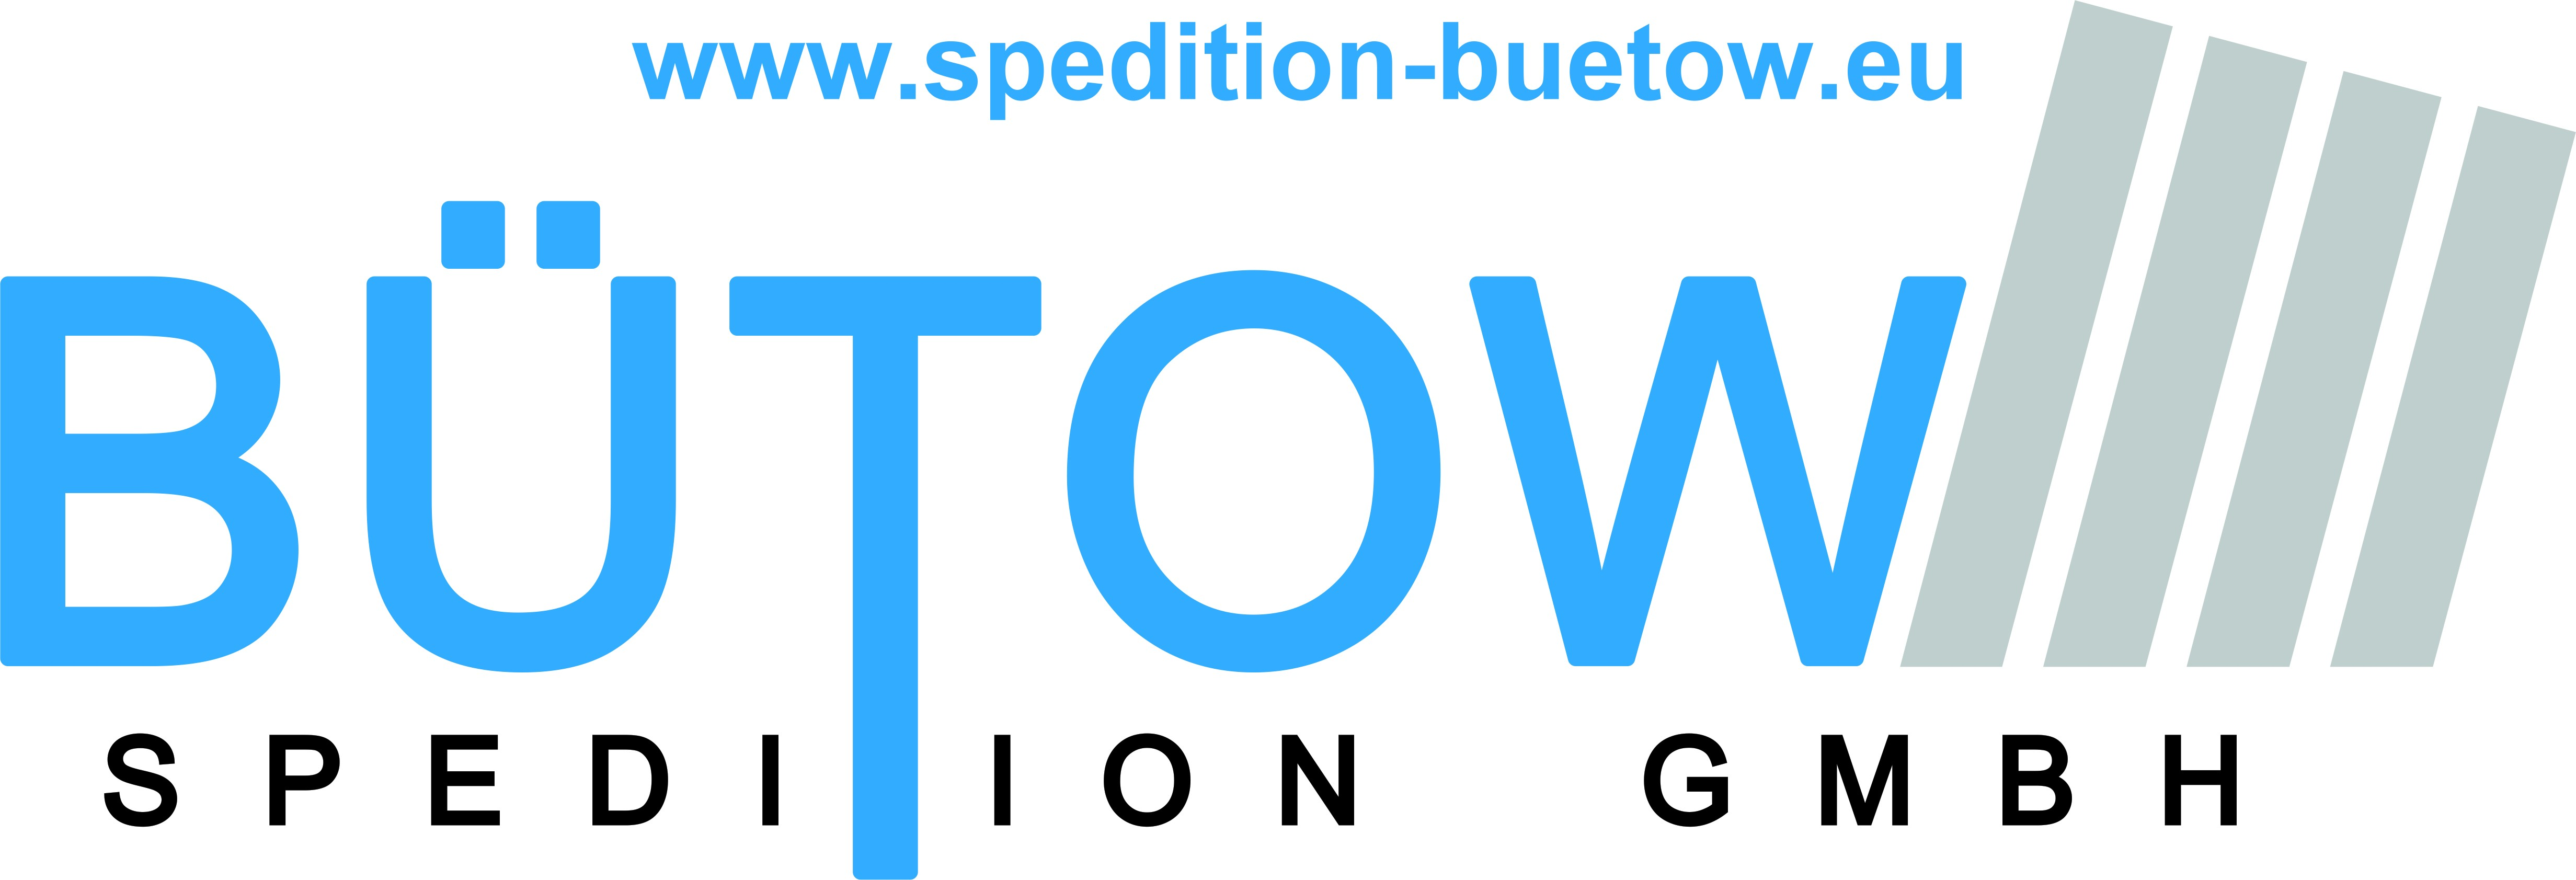 Spedition Bütow GmbH